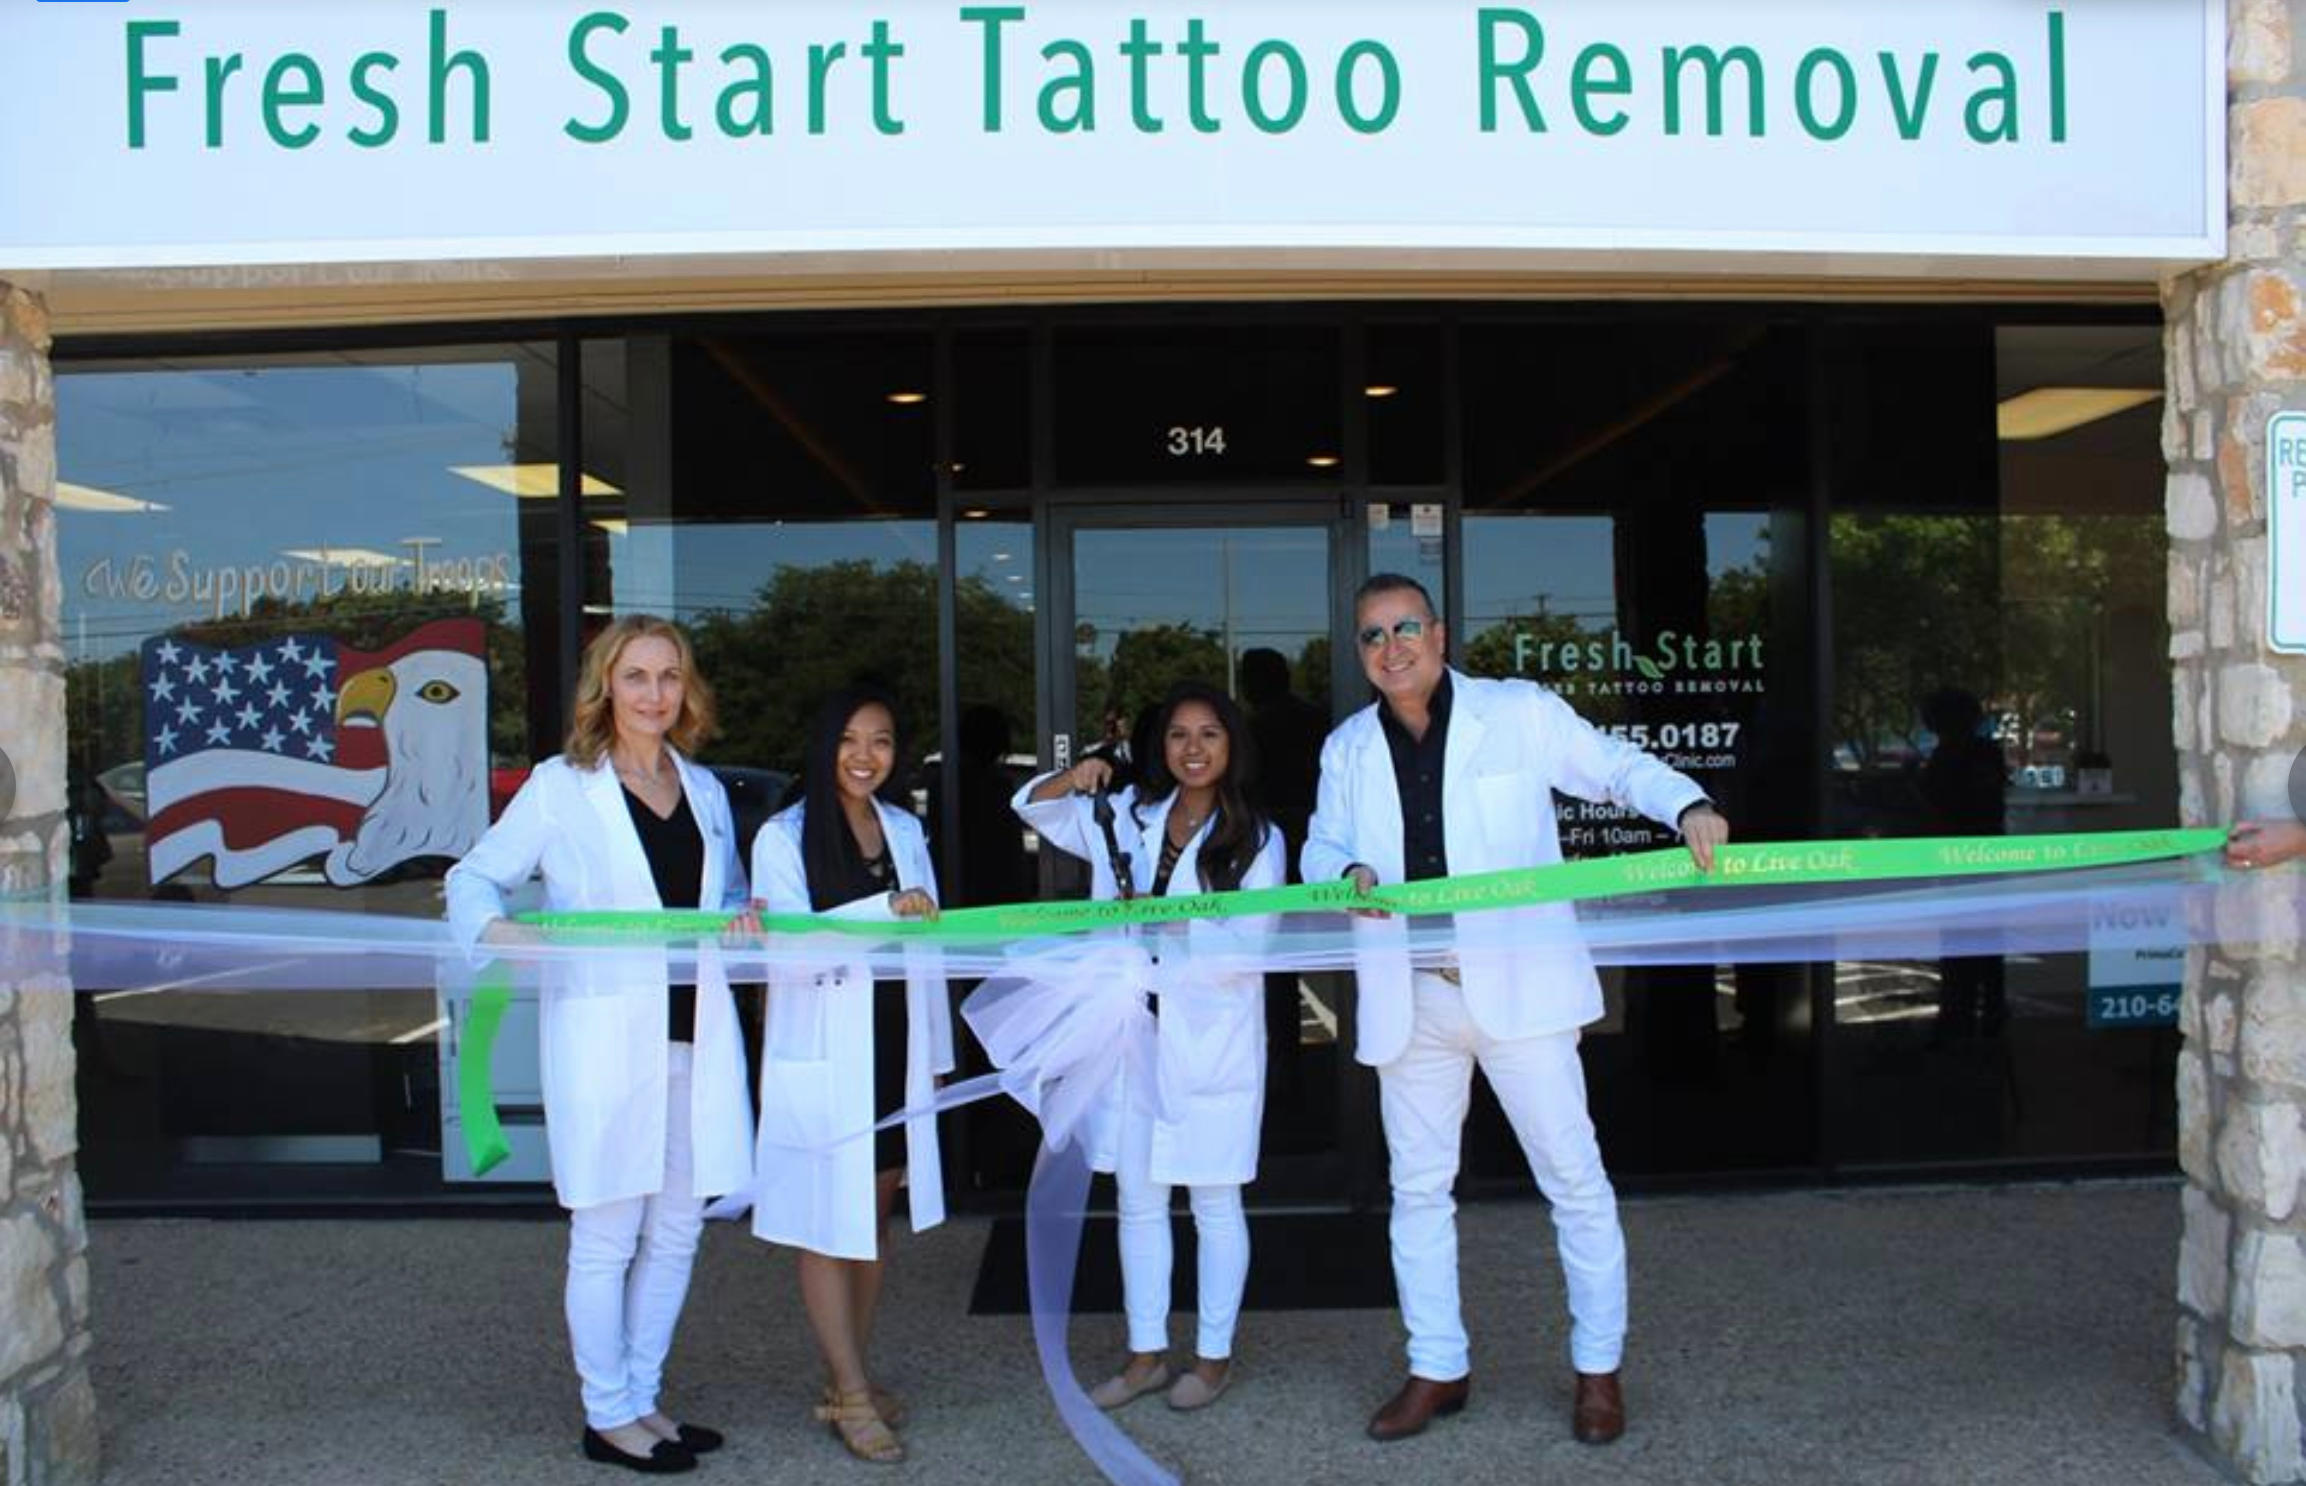 Fresh Start Laser Tattoo Removal Clinic image 3